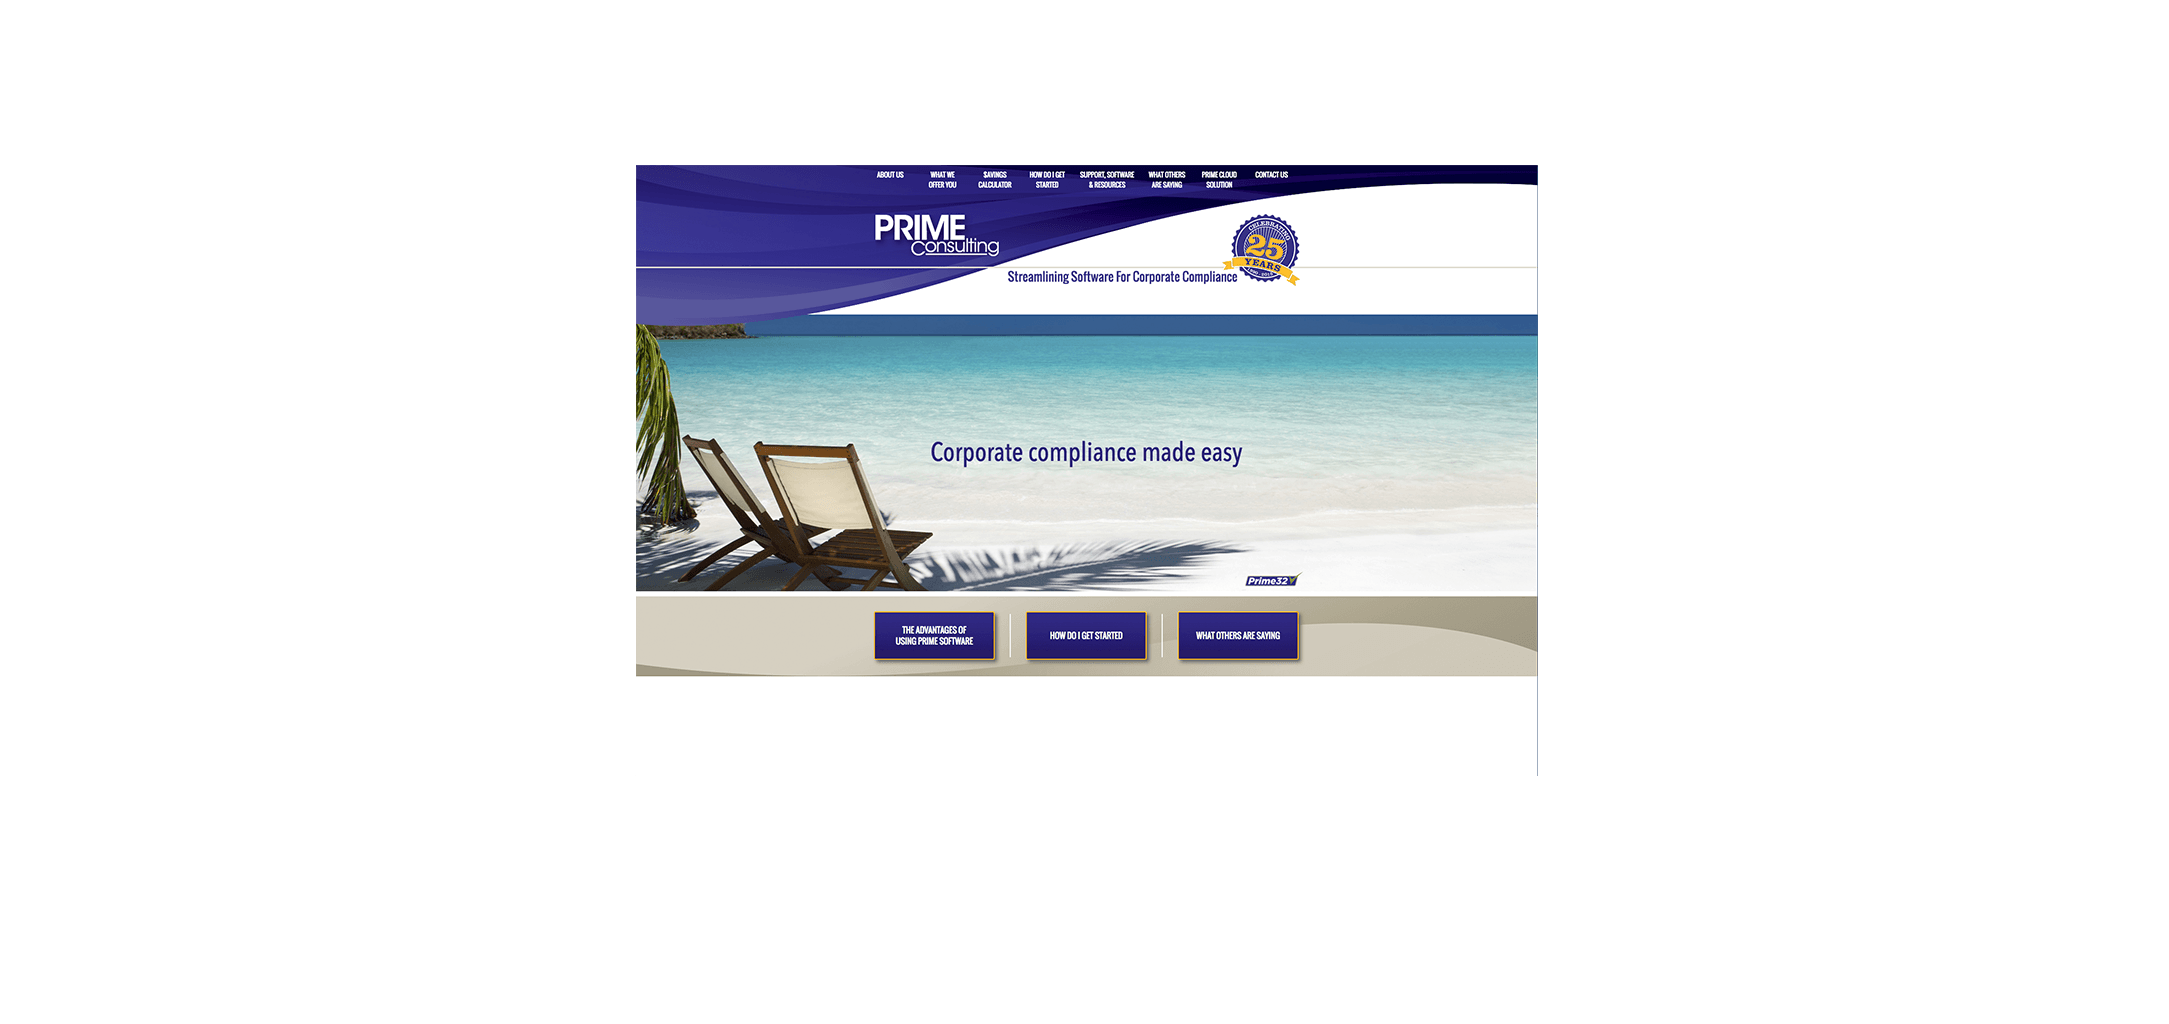 Prime-consulting-Website-designed-by-Circle-Media01